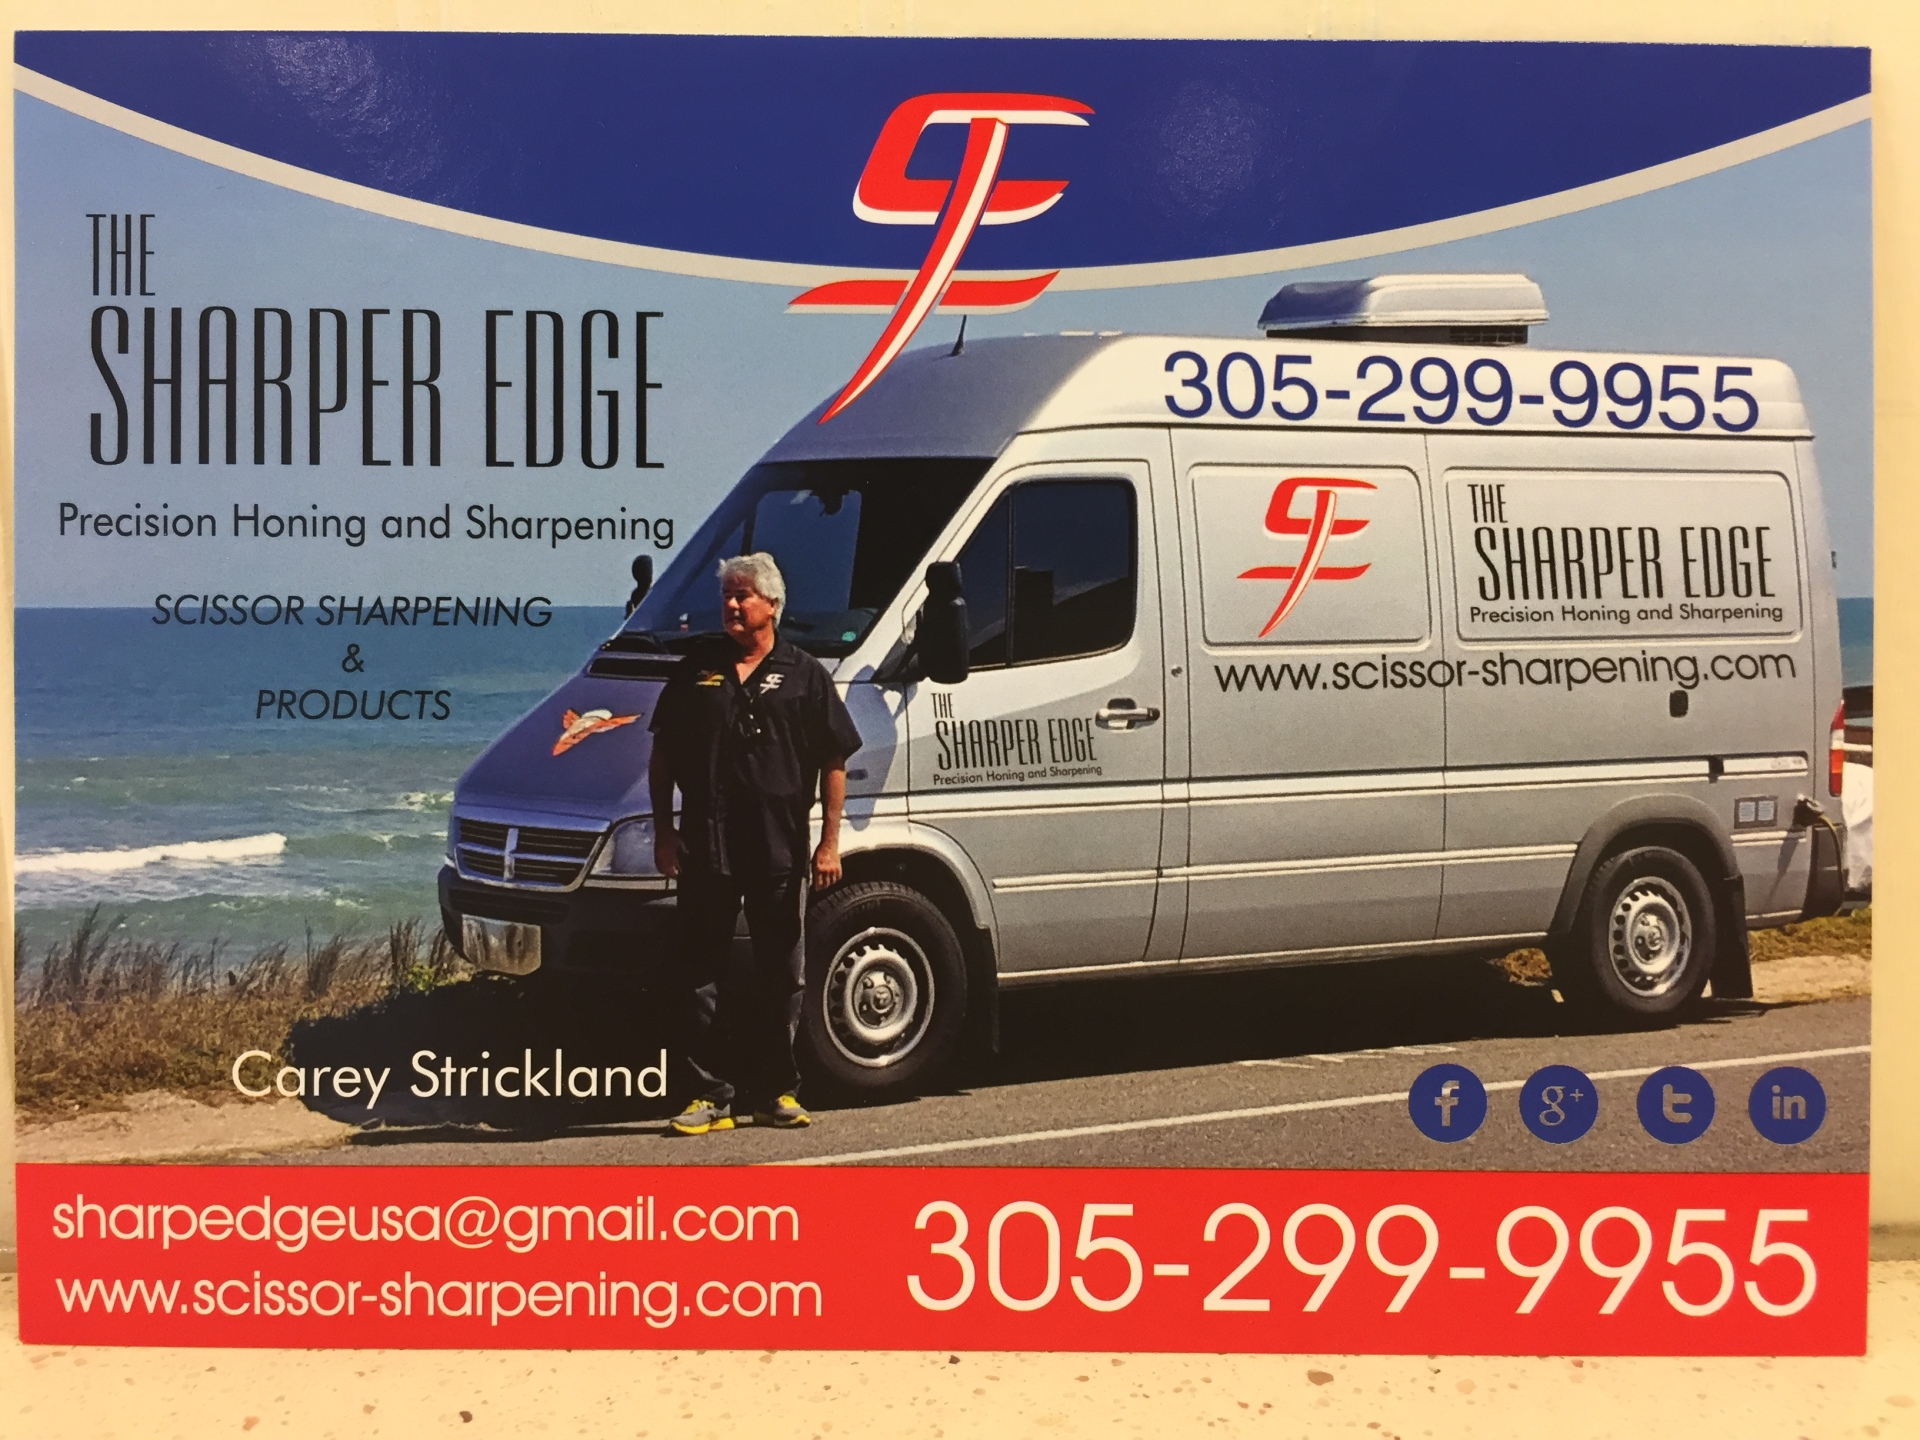 Sharper Edge Mobile van with Carey Strickland